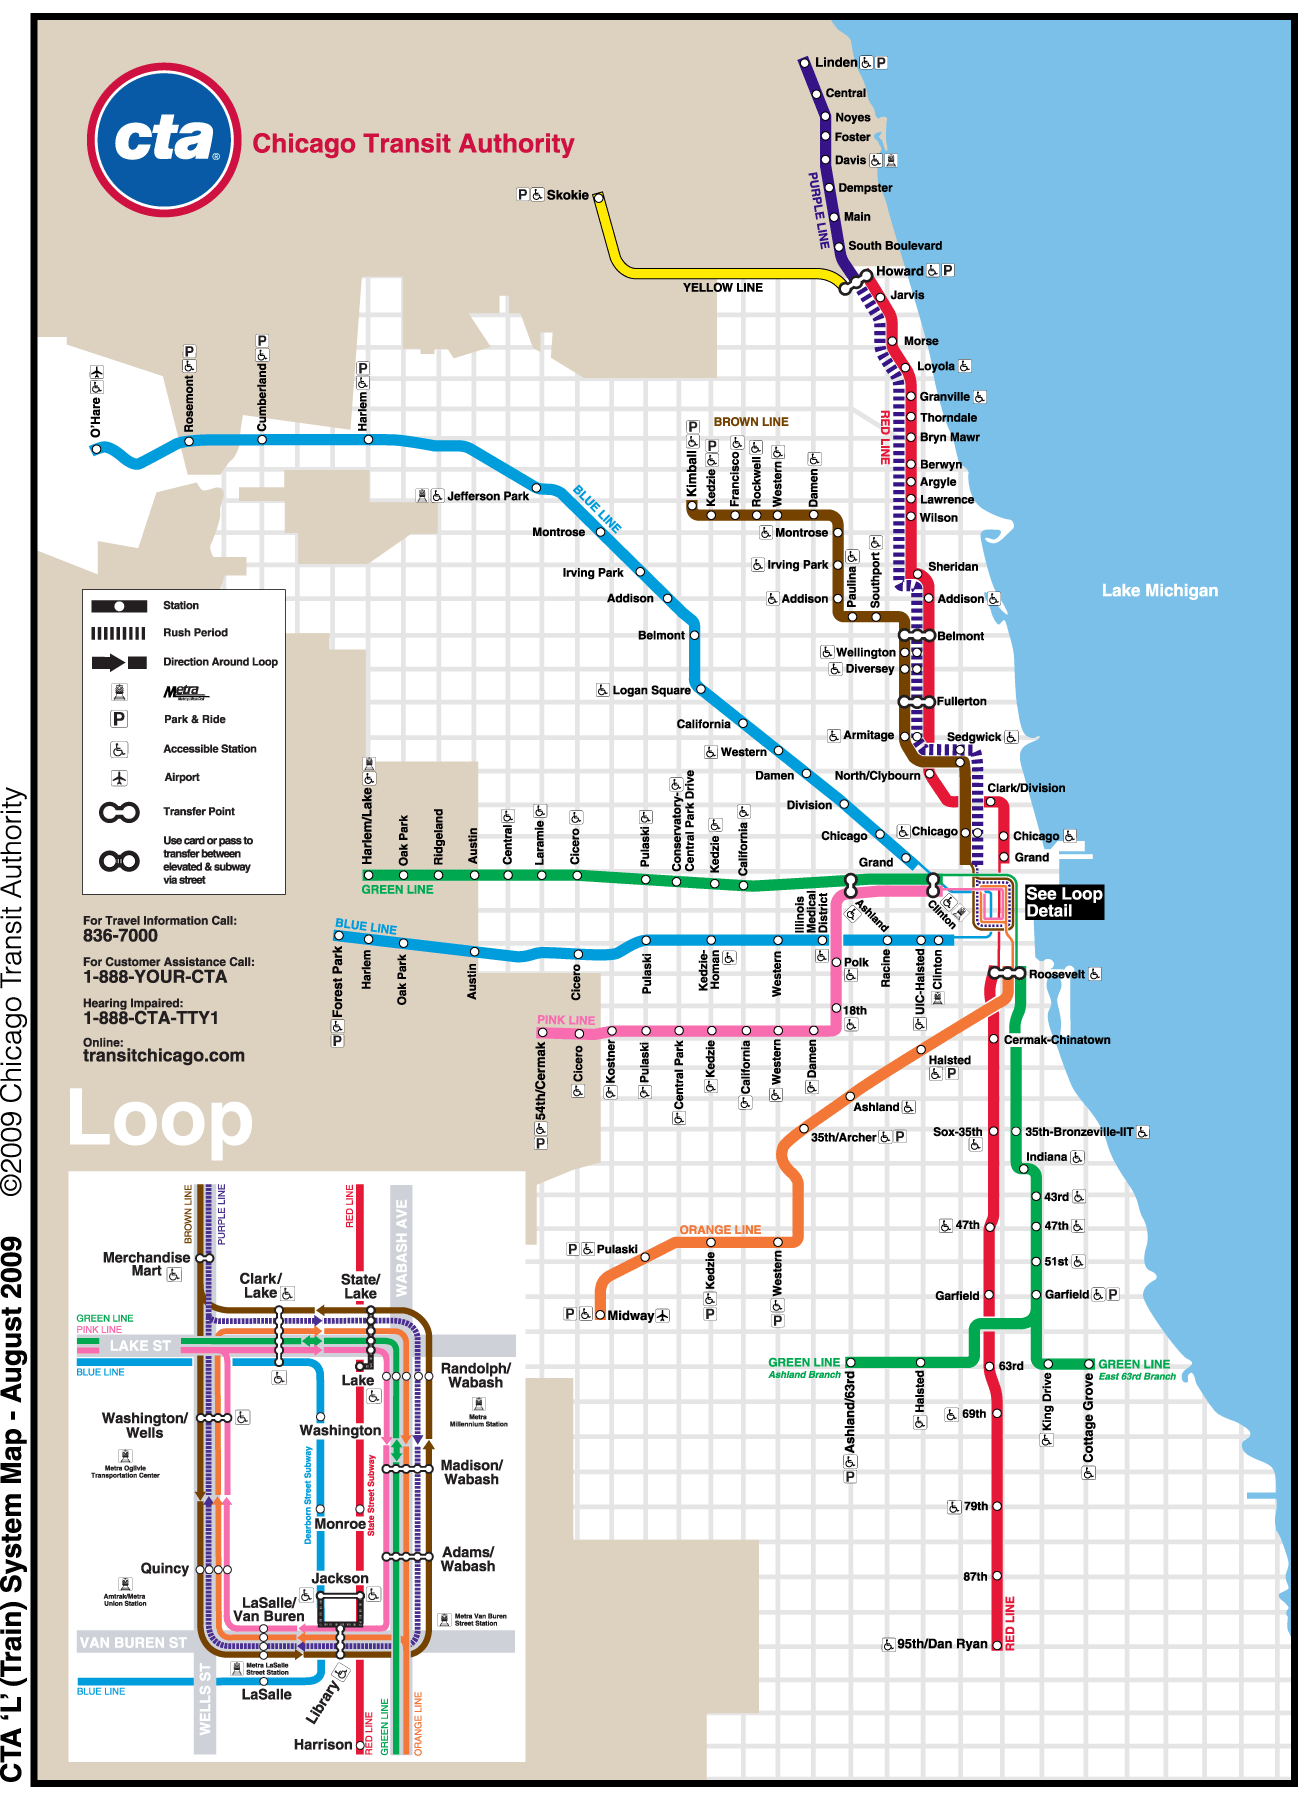 Subway Map Chicao.5801 N River Rd Rosemont Il 60018 To Washington Station19 N